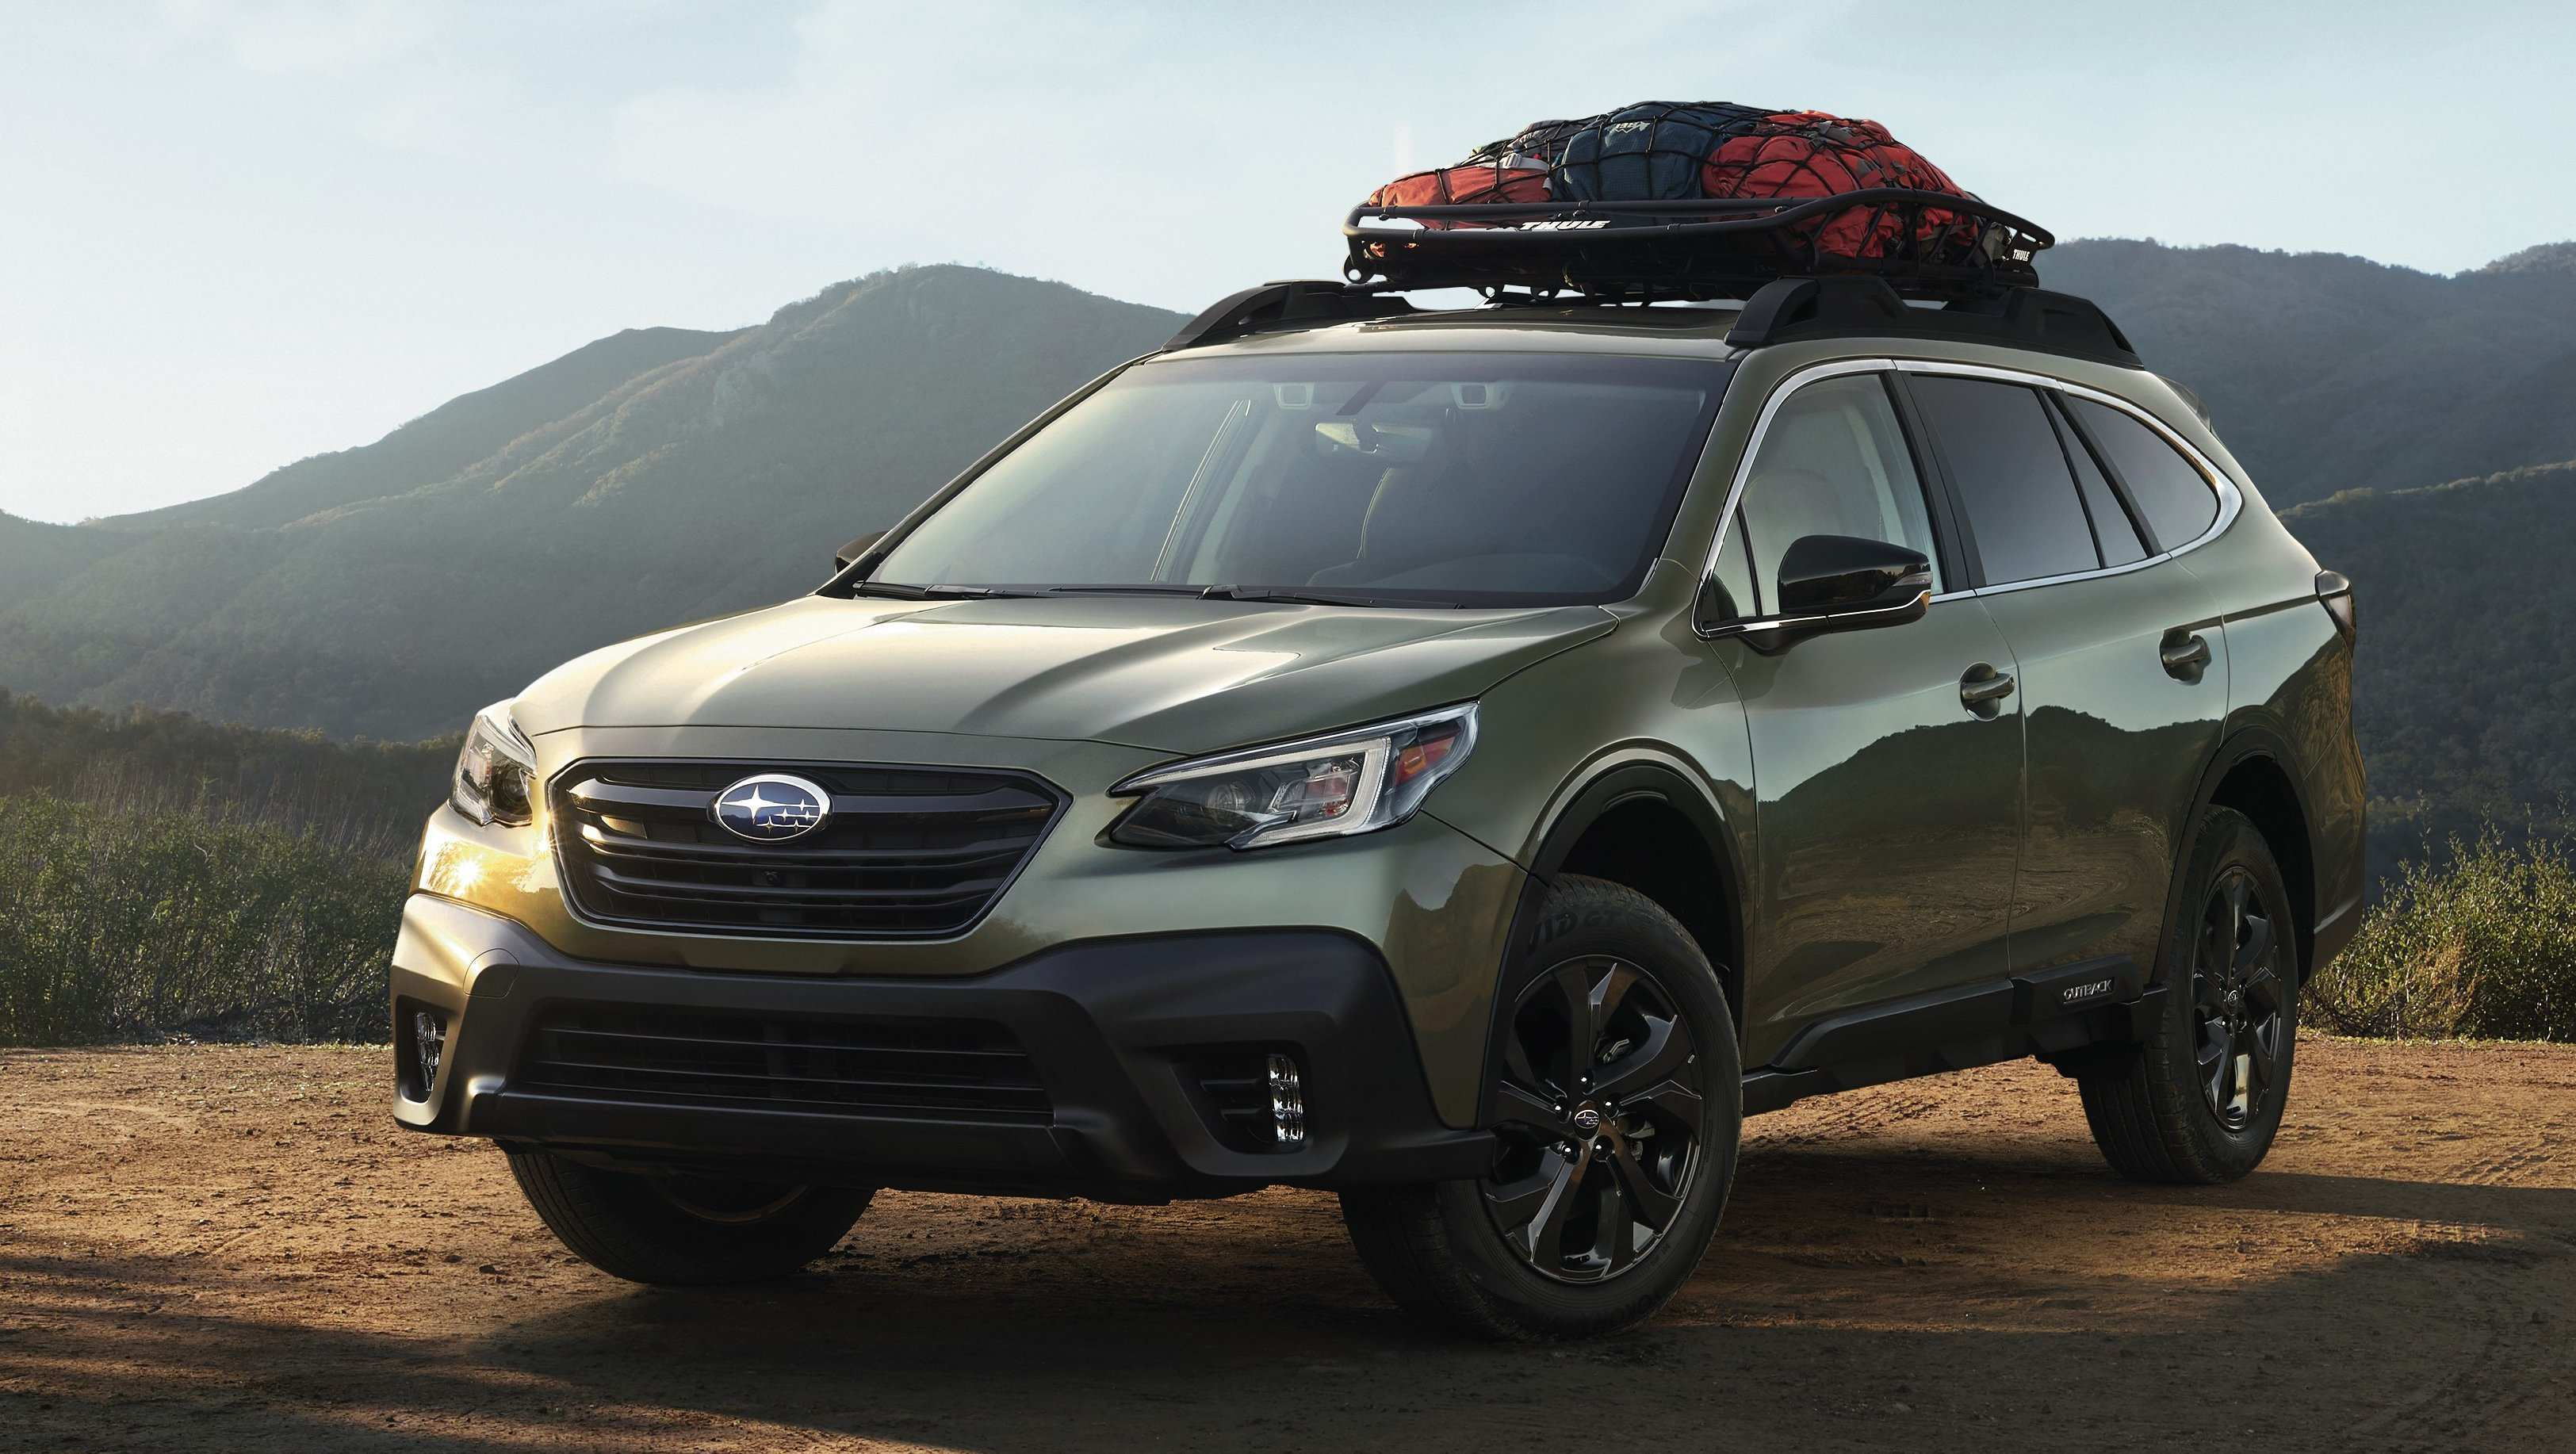 57 Best Review 2020 Subaru Outback Gas Mileage Performance for 2020 Subaru Outback Gas Mileage